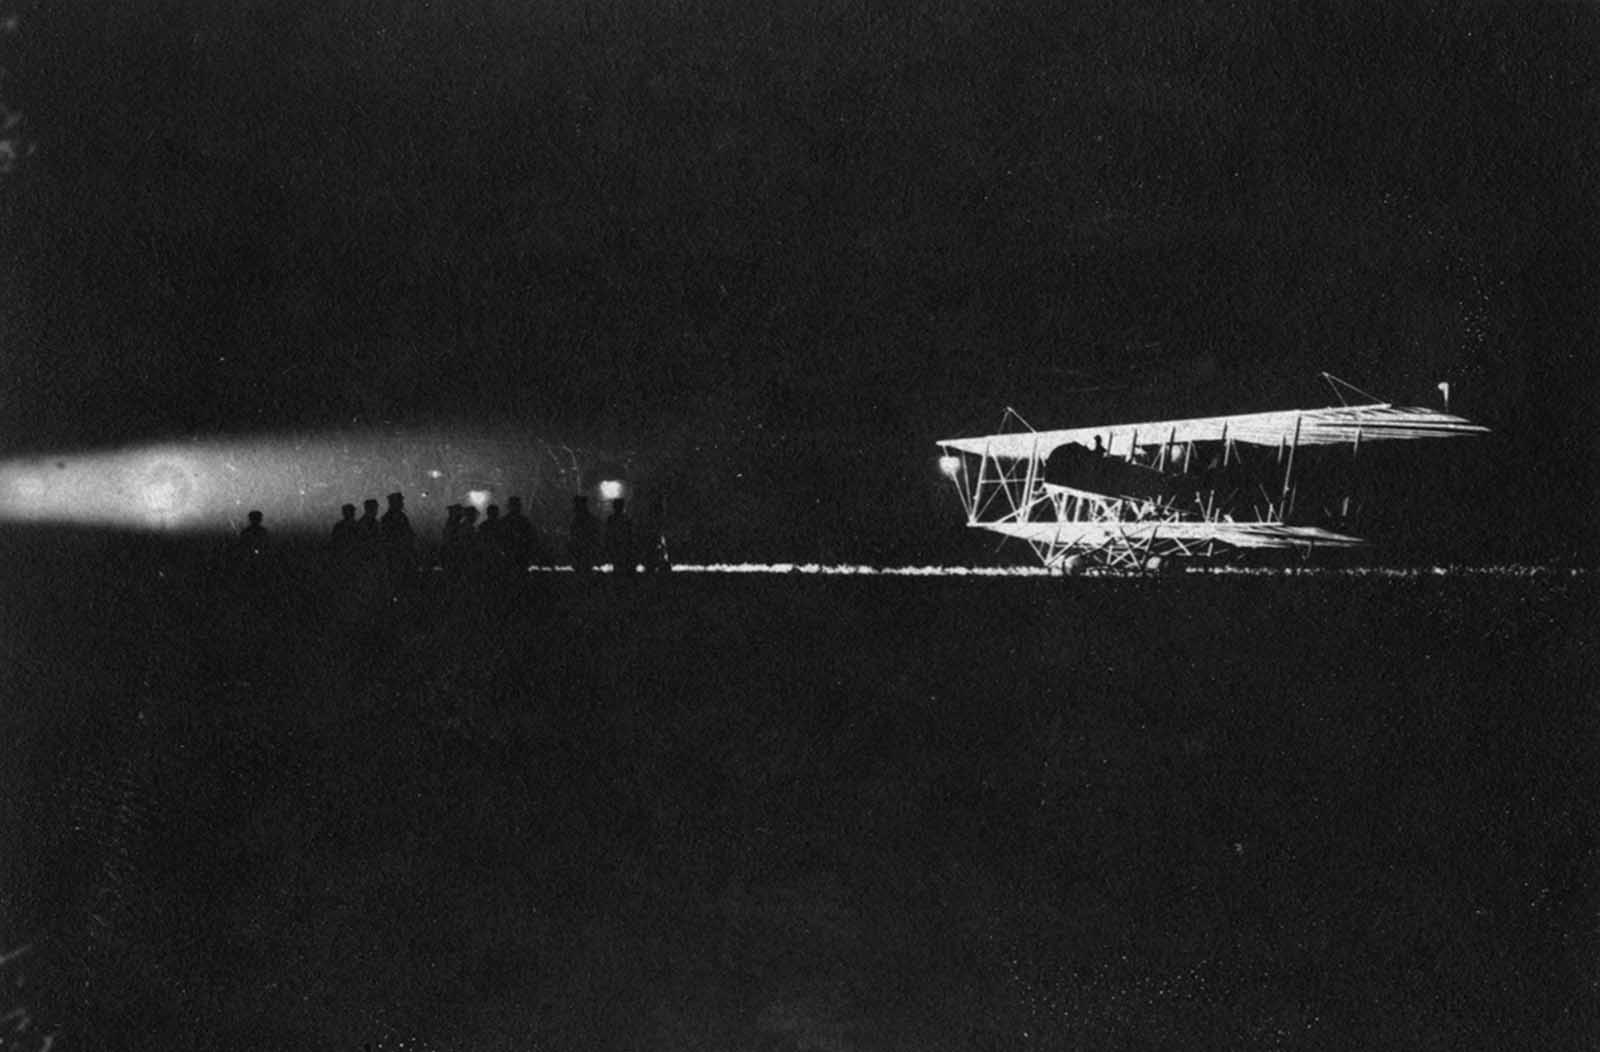 Night Flight at Le Bourget, France.